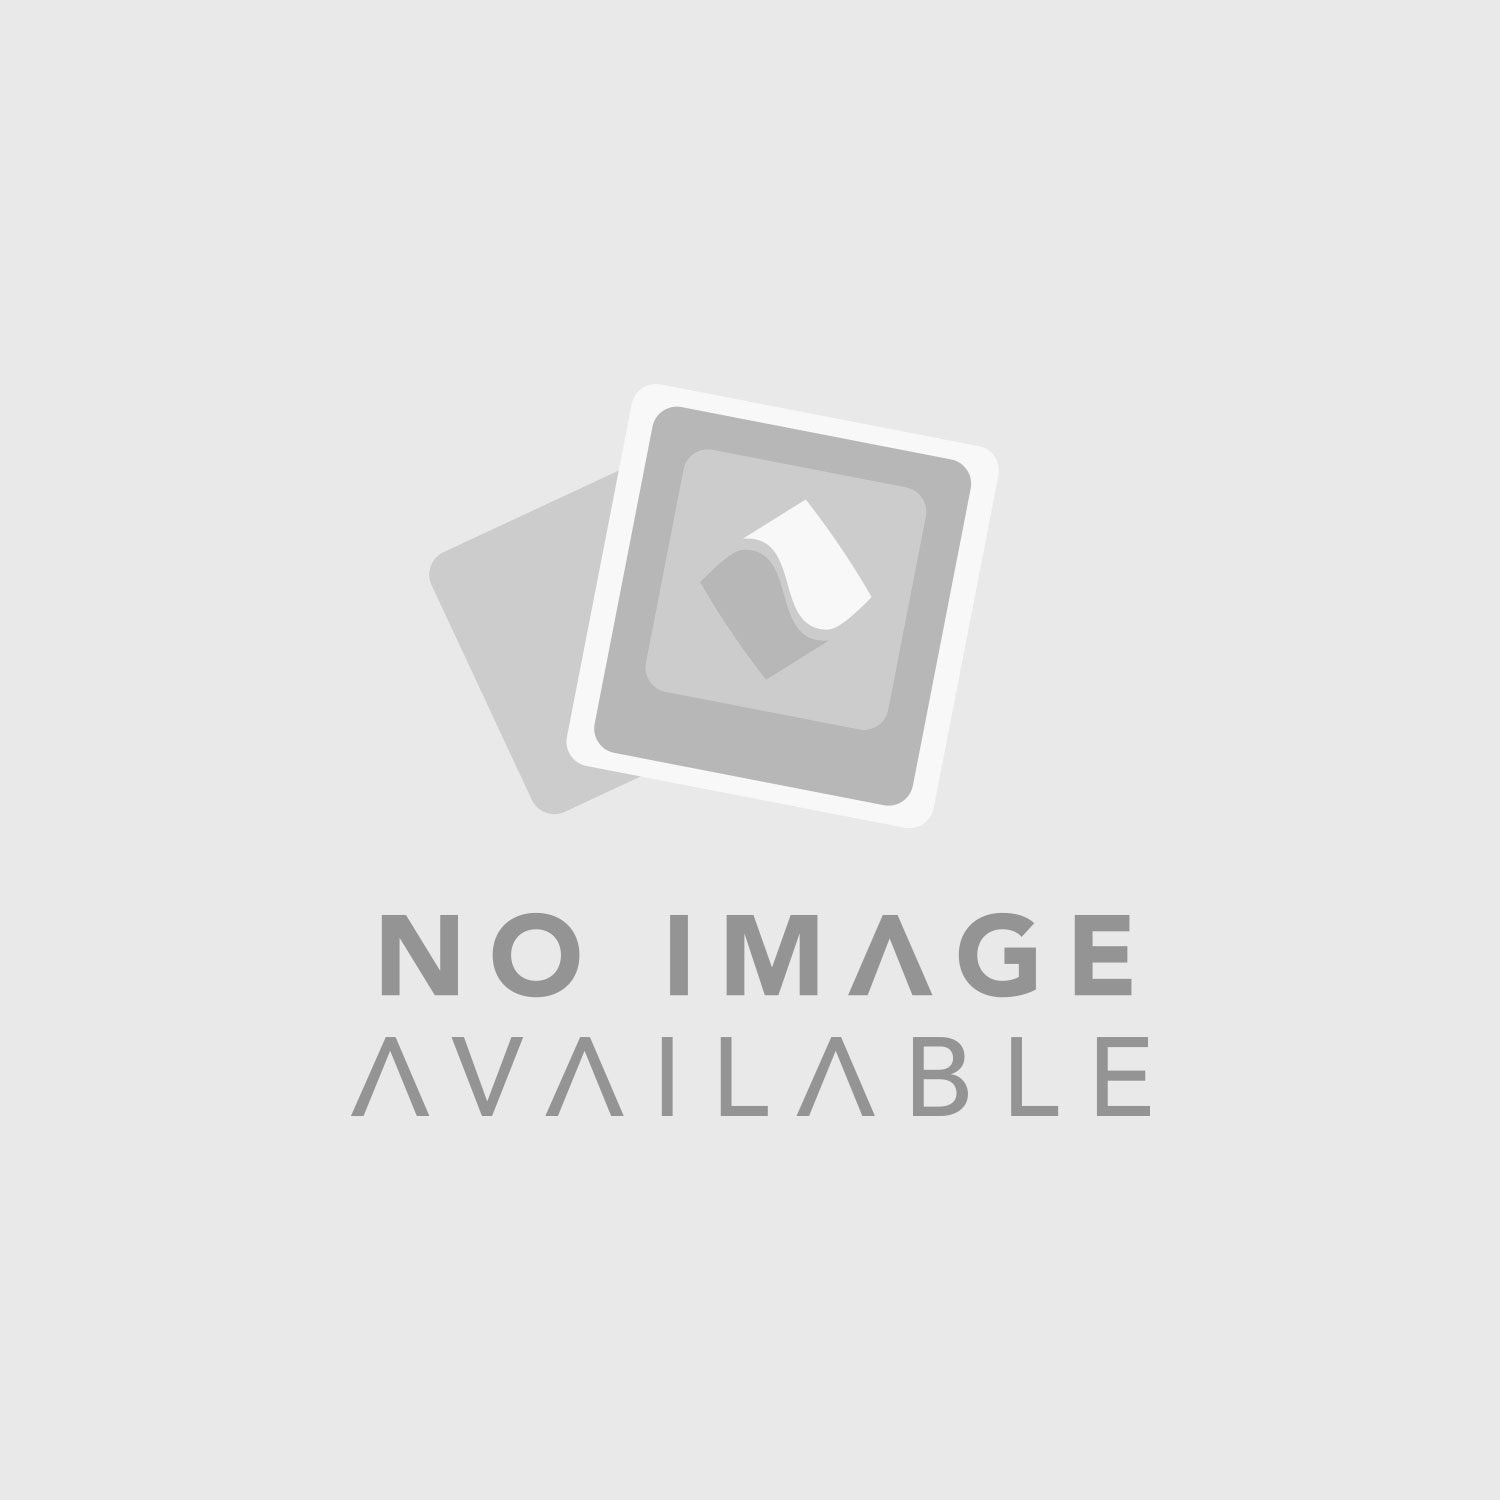 Neutrik XCR-1 Color Coding Ring (Brown)